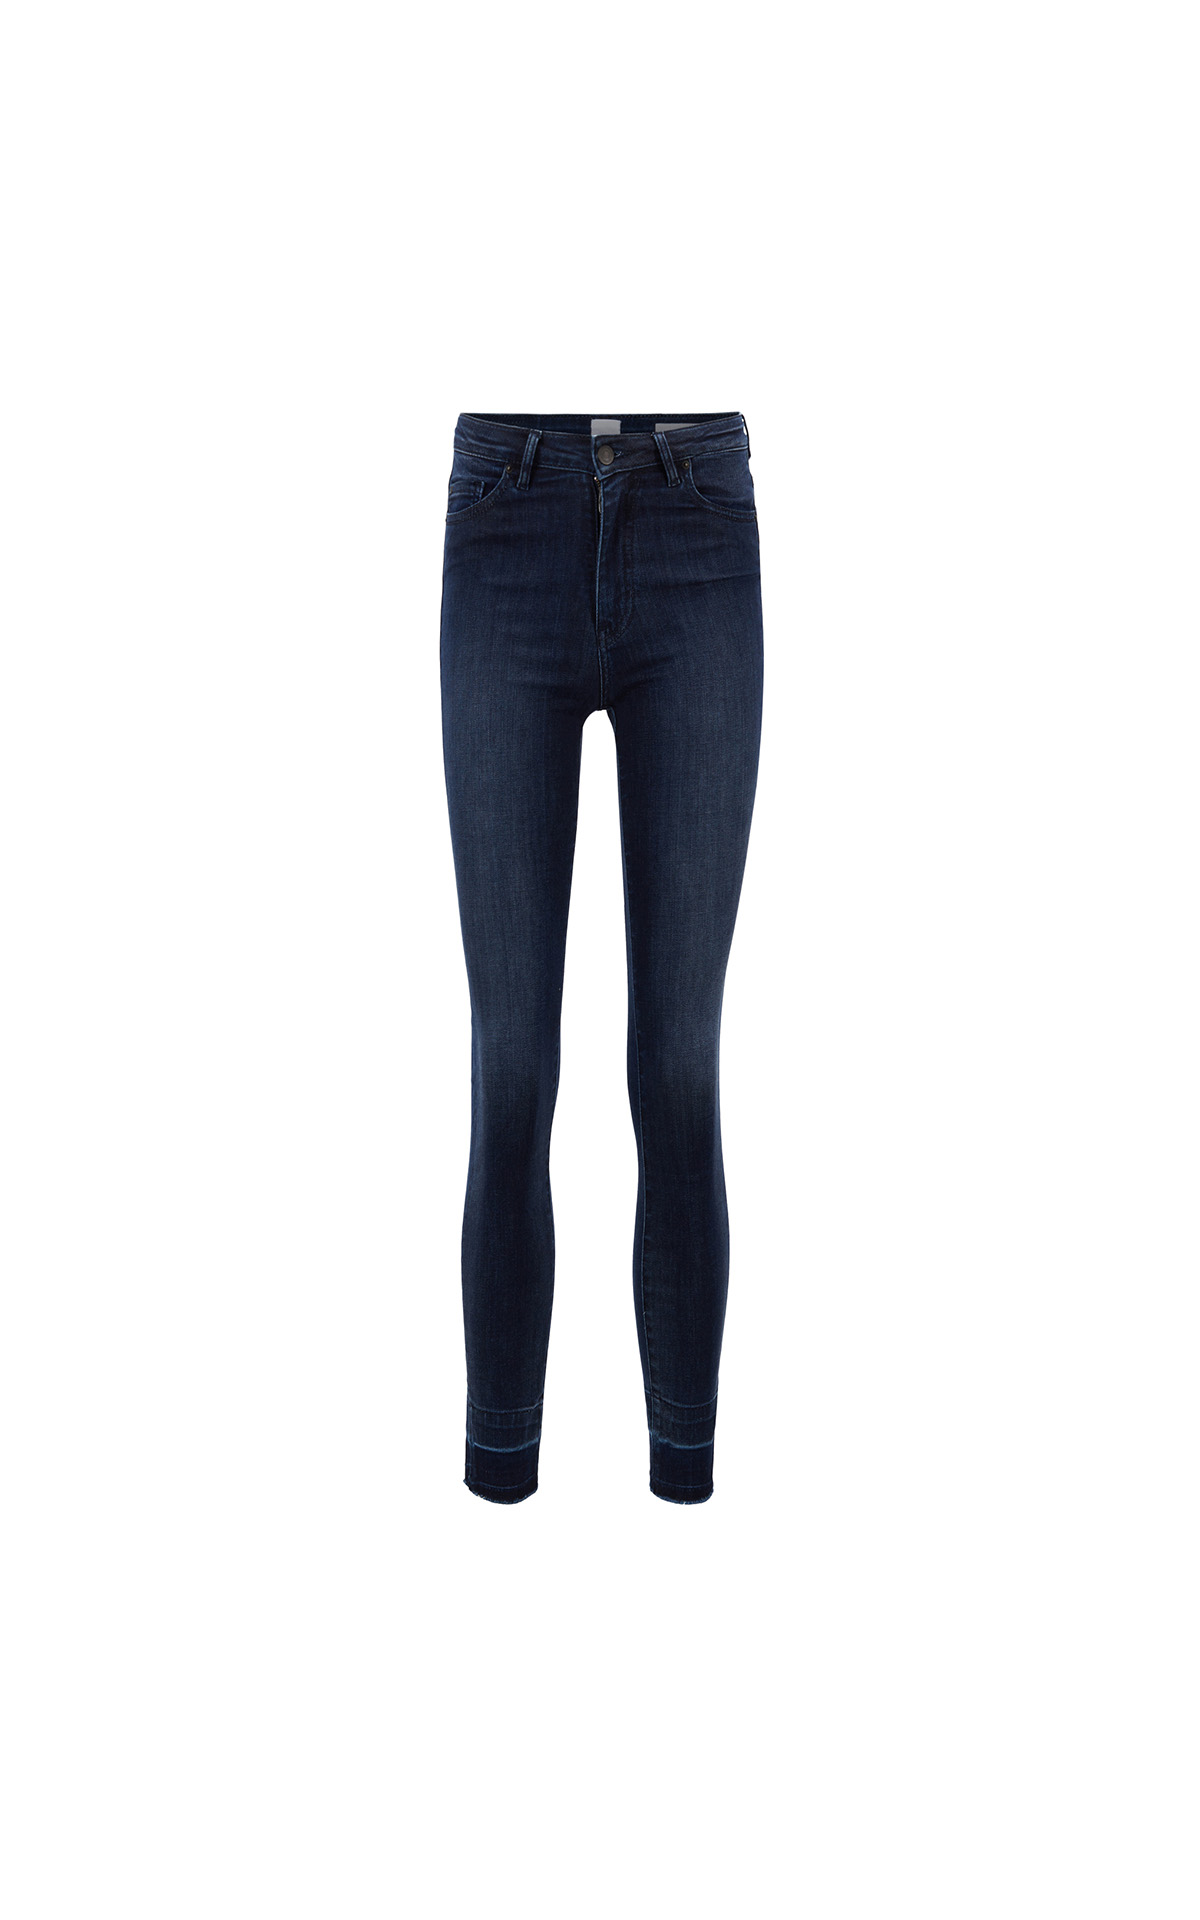 Boss J11 Manteca Skinny Jeans at The Bicester Village Shopping Collection